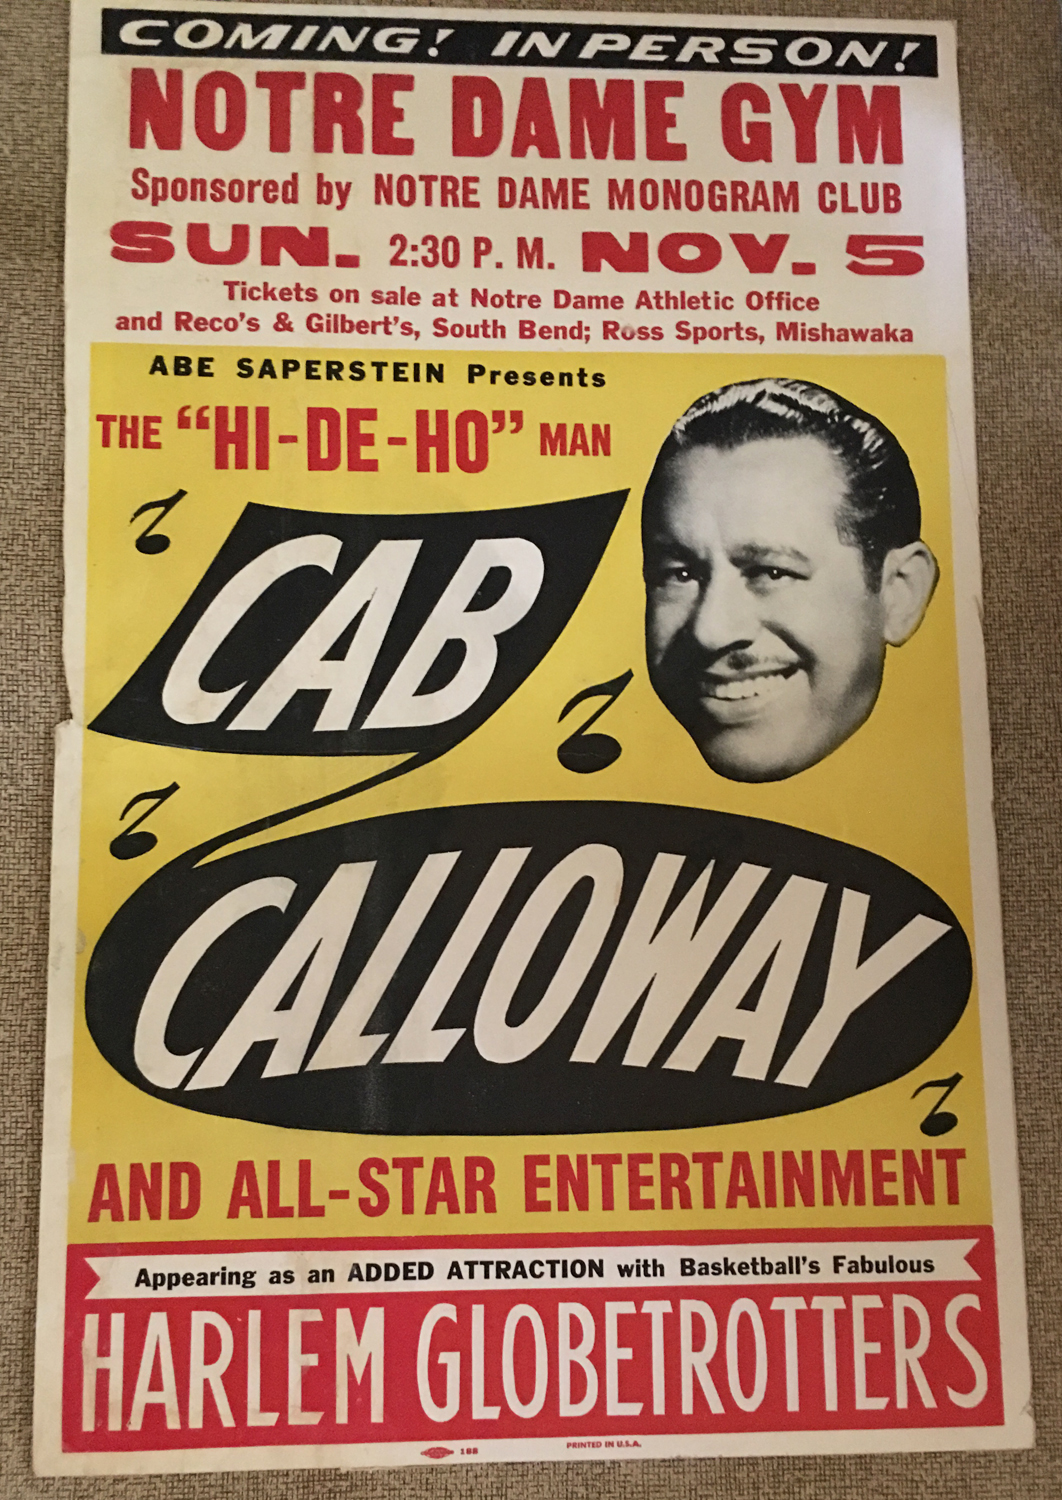 Image for Cab Calloway / Harlem Globetrotters, Notre Dame University Window Card, 1961